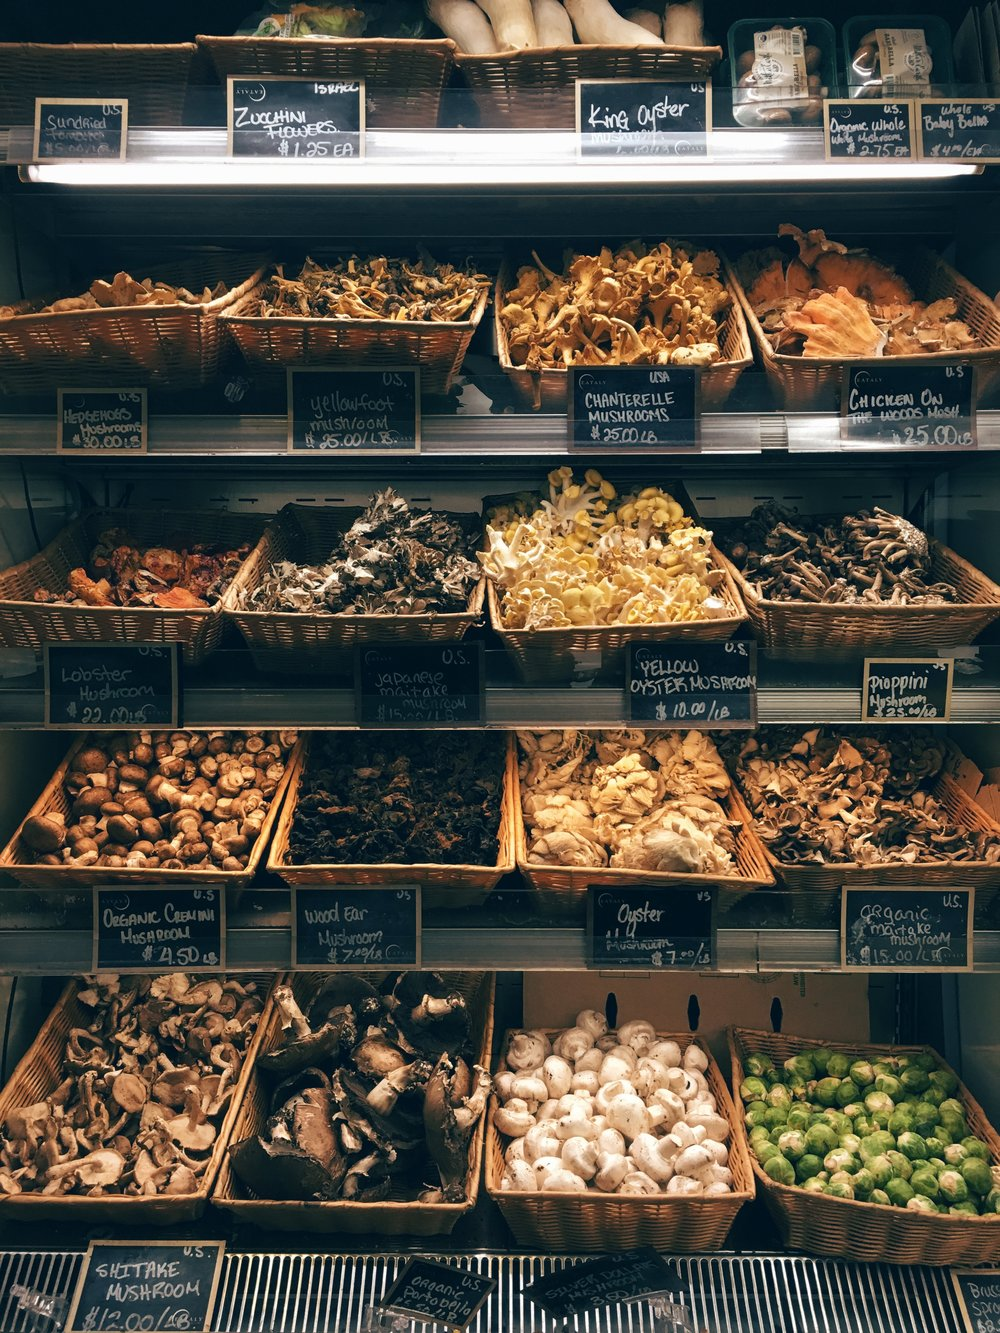 Mushrooms stand at Eataly. Take your pick!